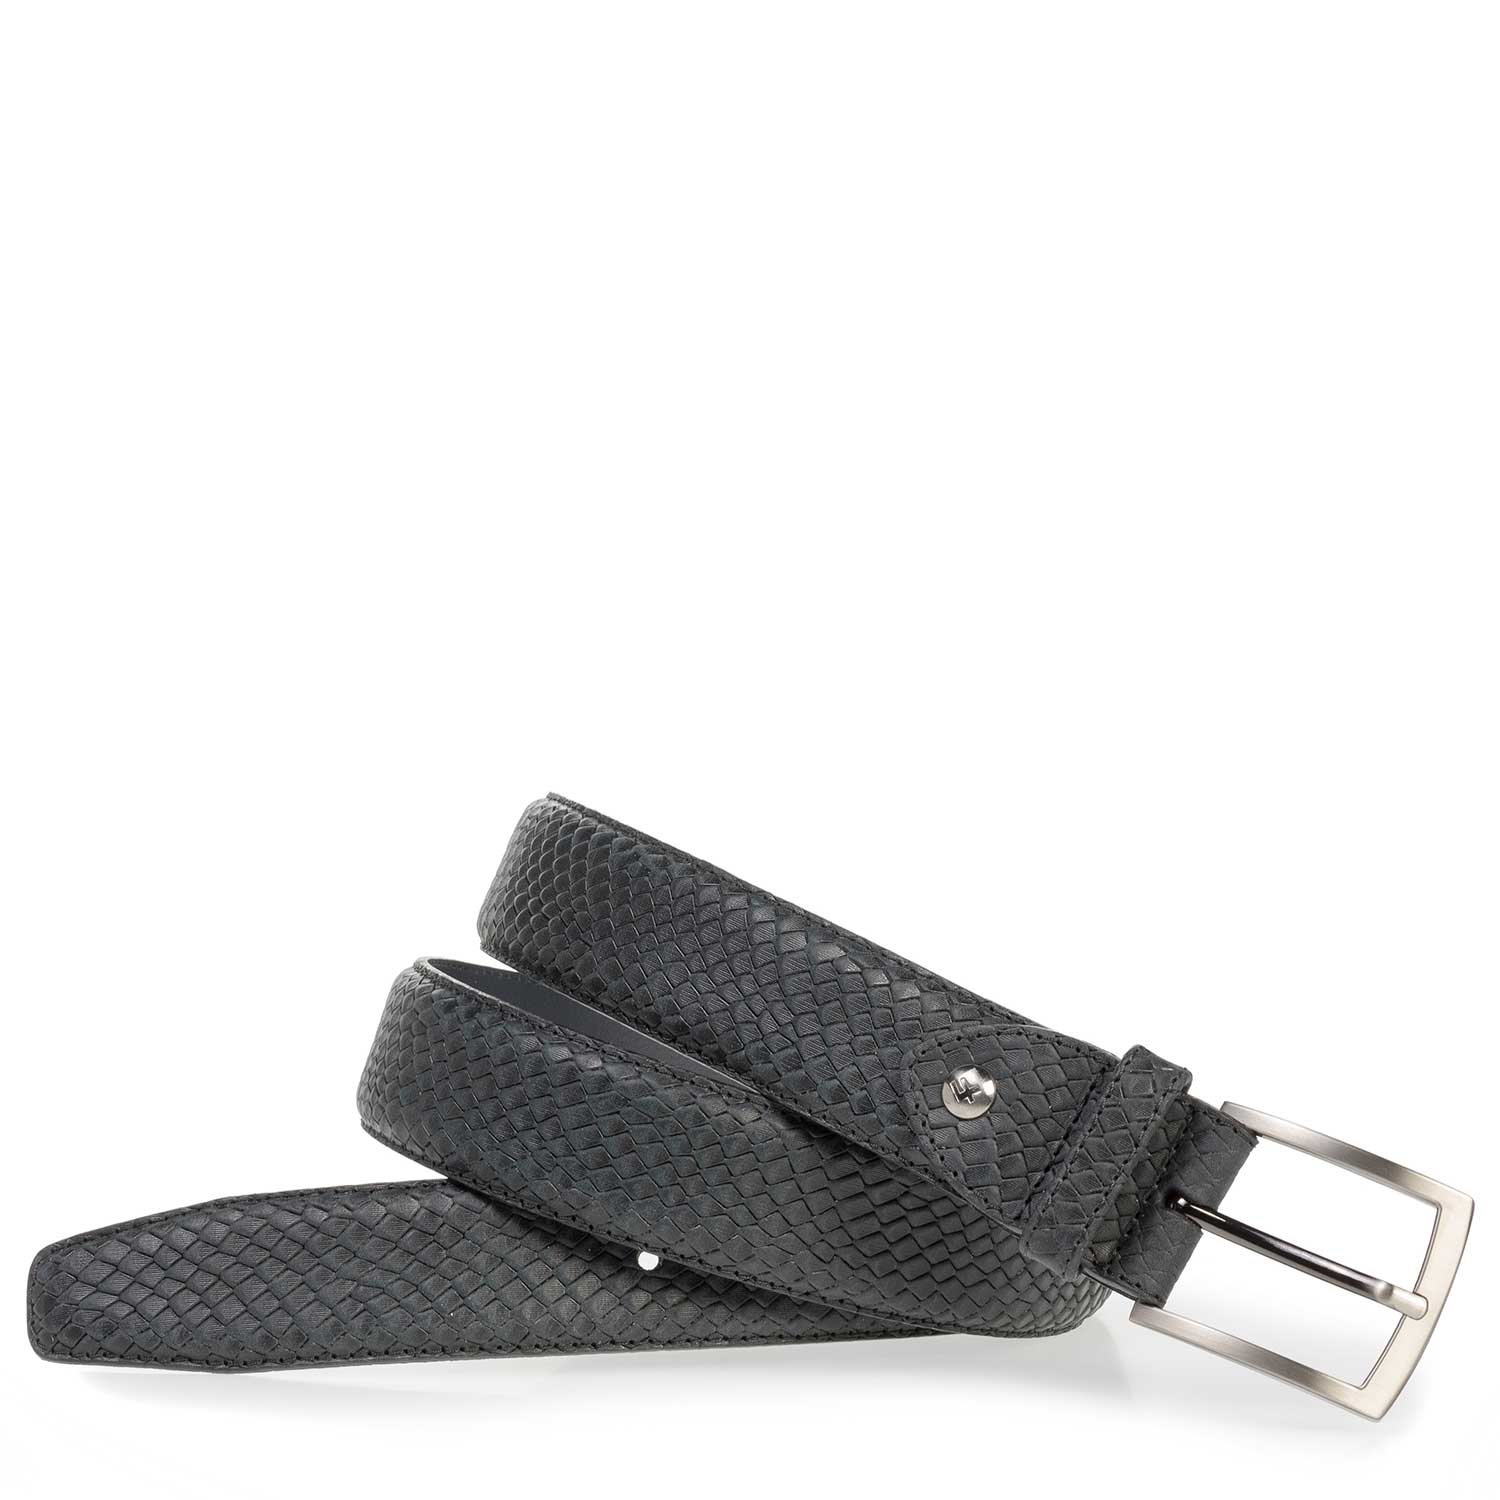 75201/48 - Black leather belt with croco print